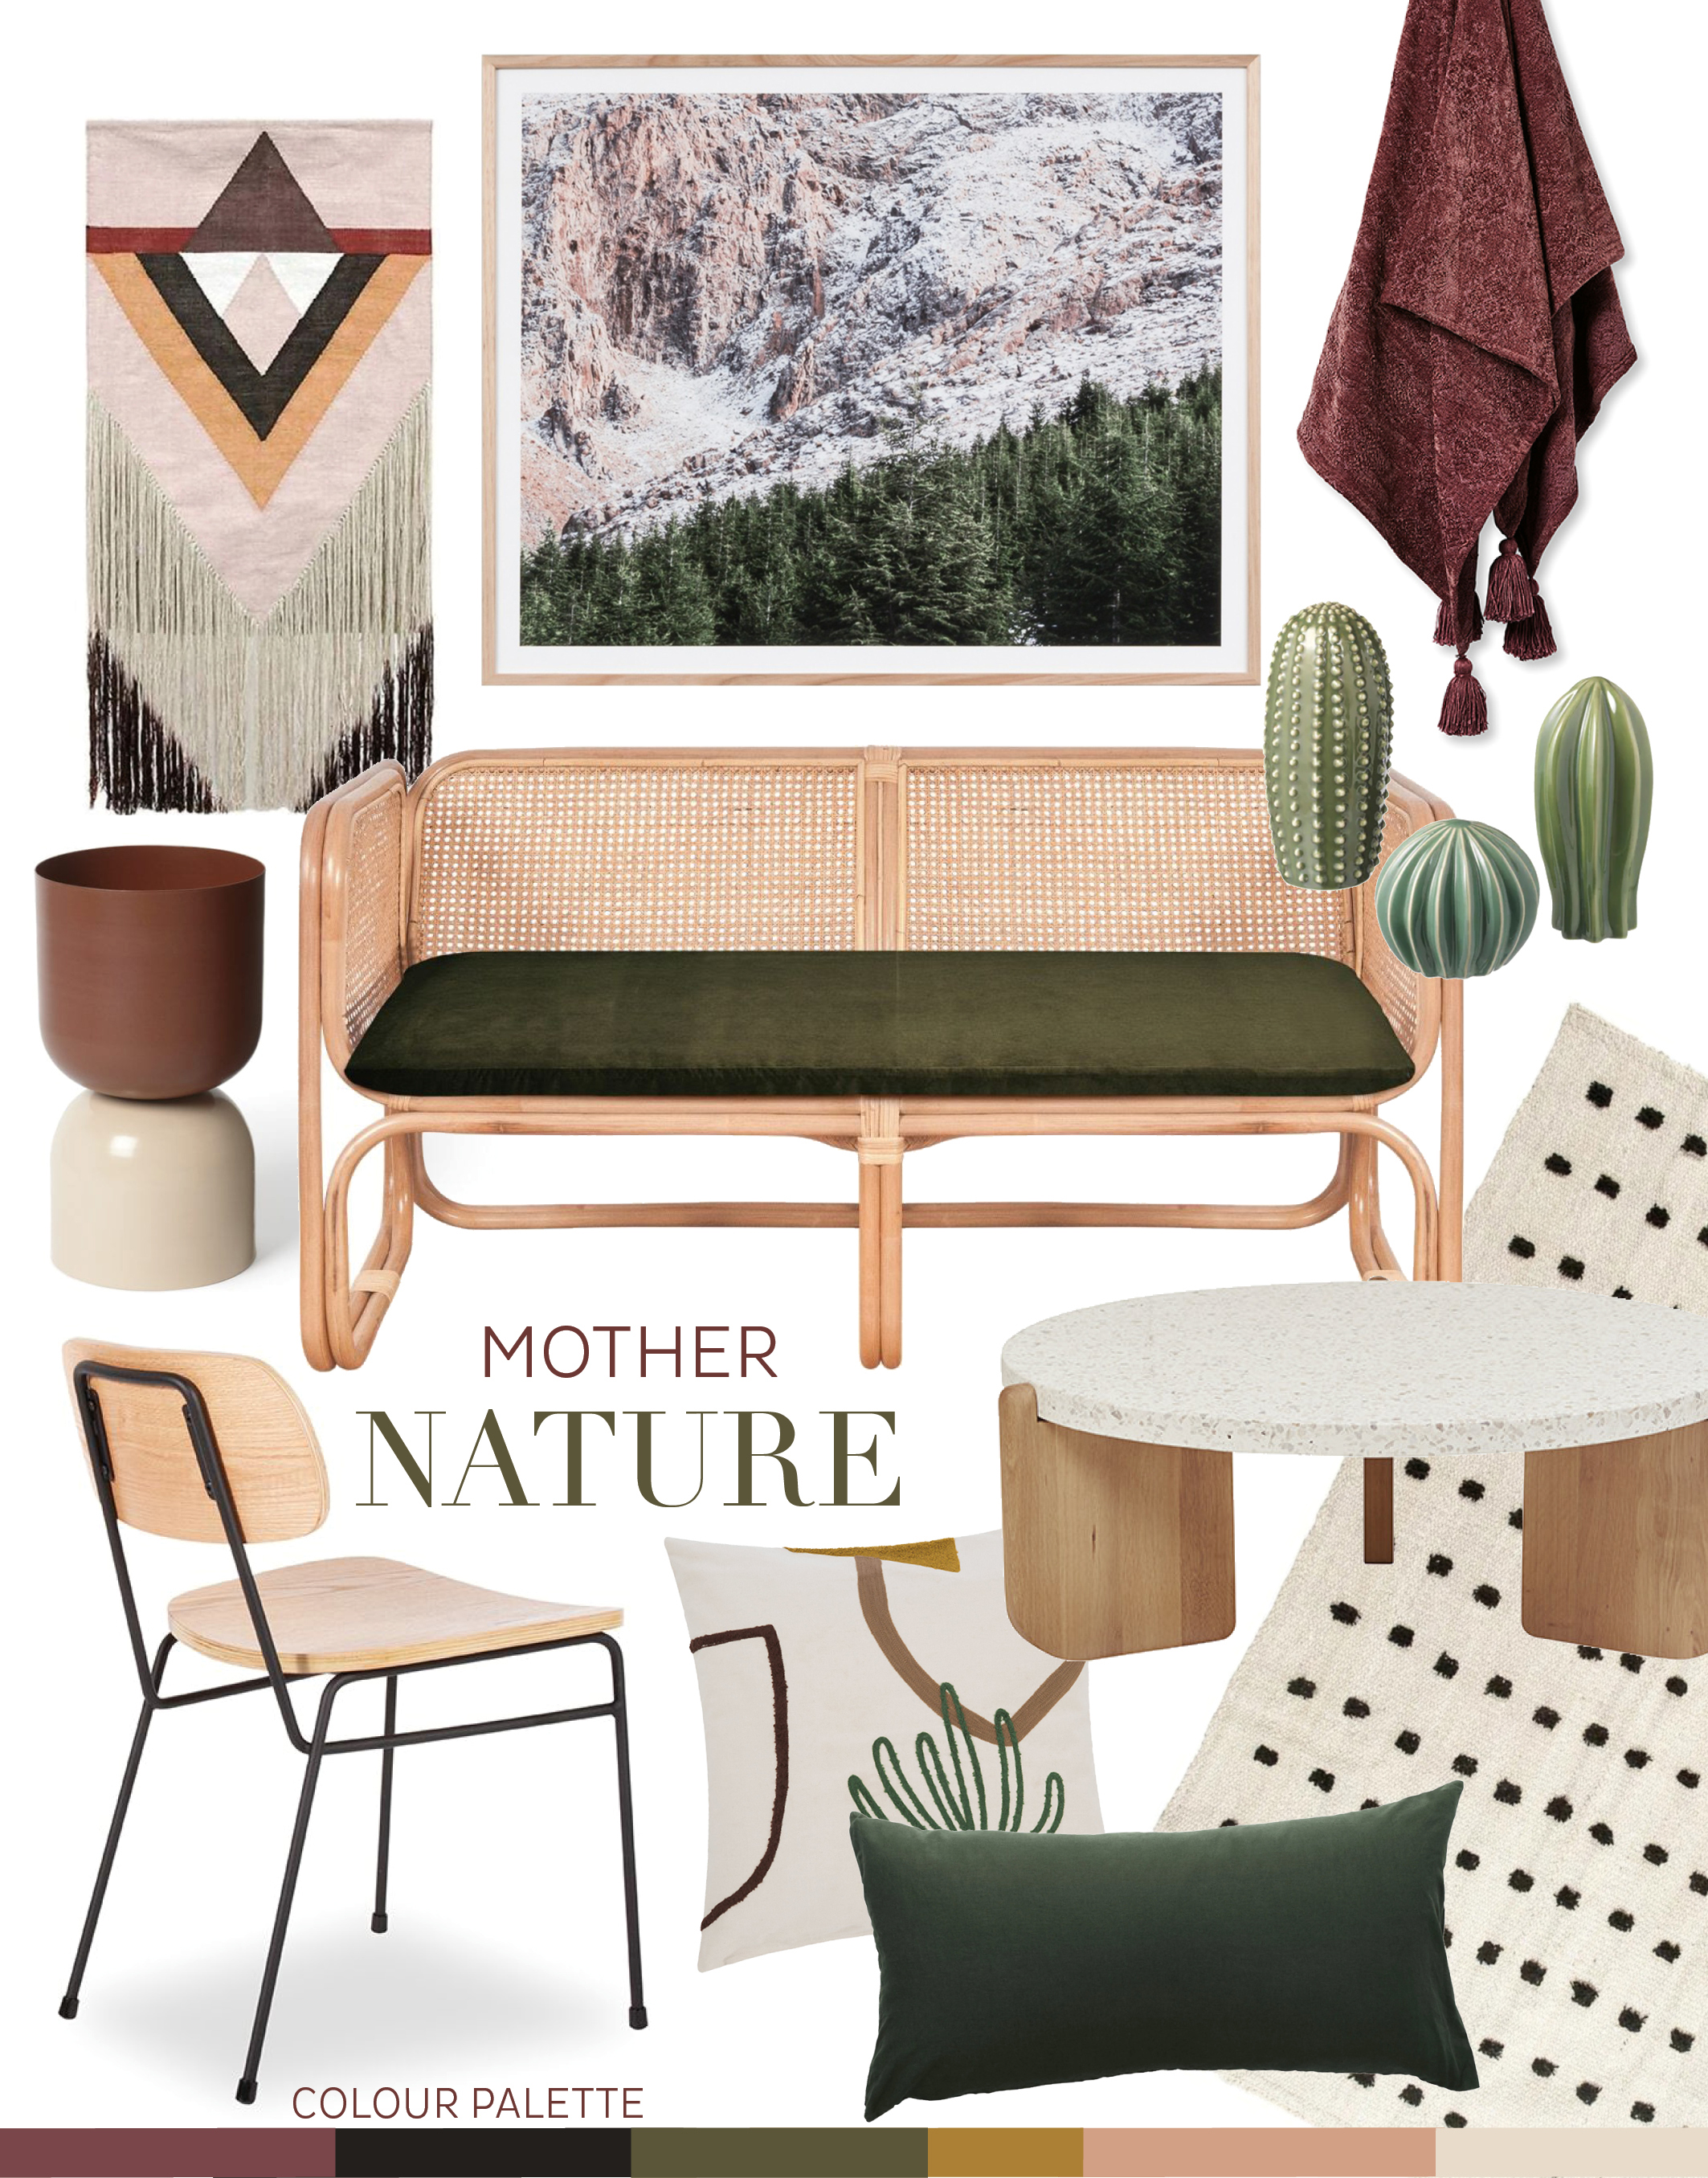 adore_home_magazine_blog_mother_nature_cactus_arizona_desert_landscape_inspiration_aztec_boho copy.jpg